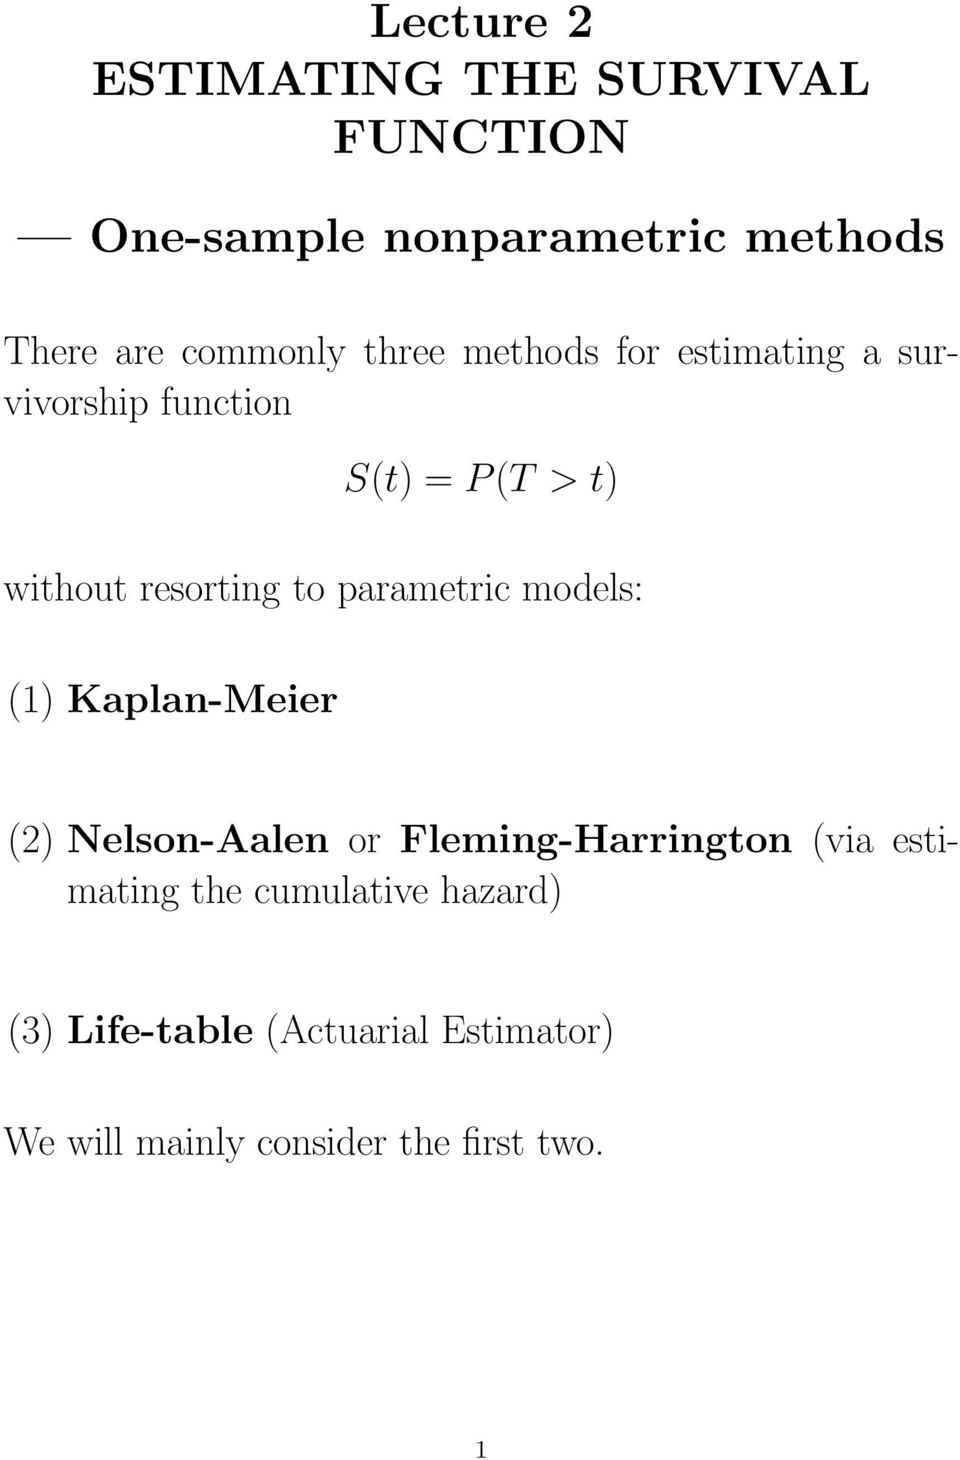 parametric models: (1) Kaplan-Meier (2) Nelson-Aalen or Fleming-Harrington (via estimating the